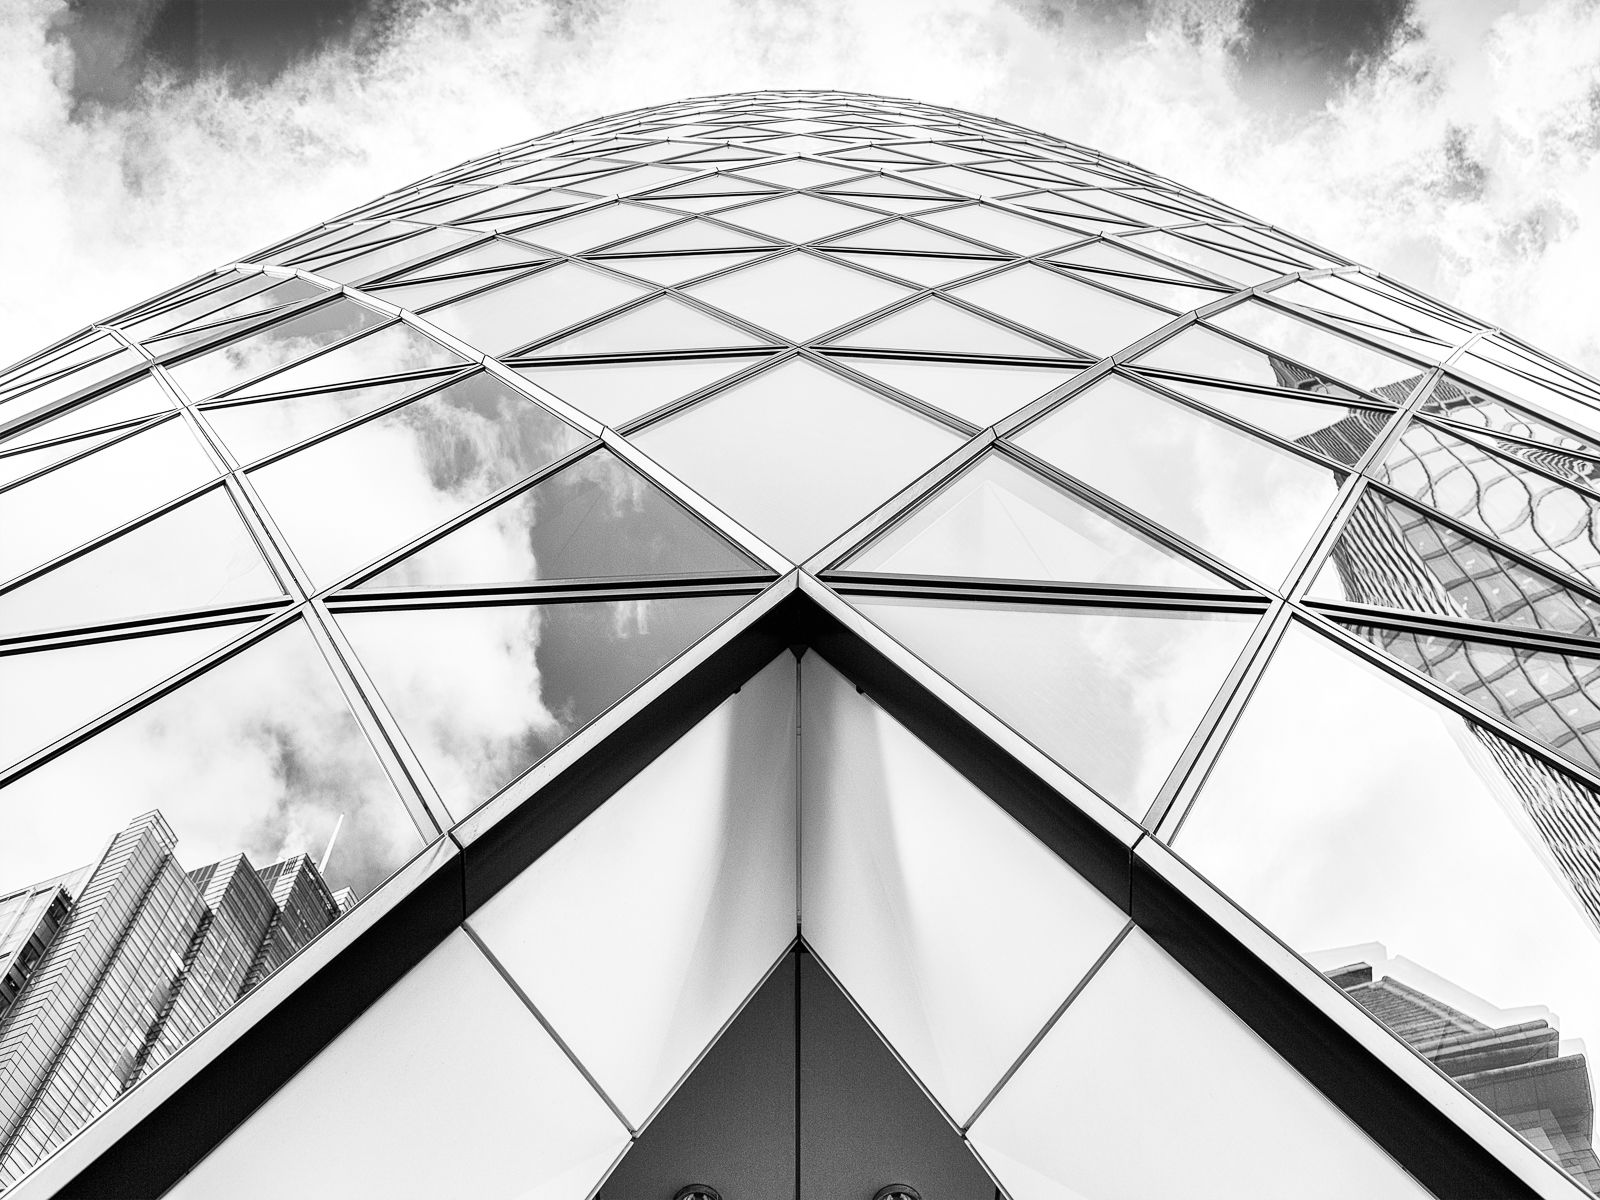 The Gherkin, 1 St Mary Axe, London, UK